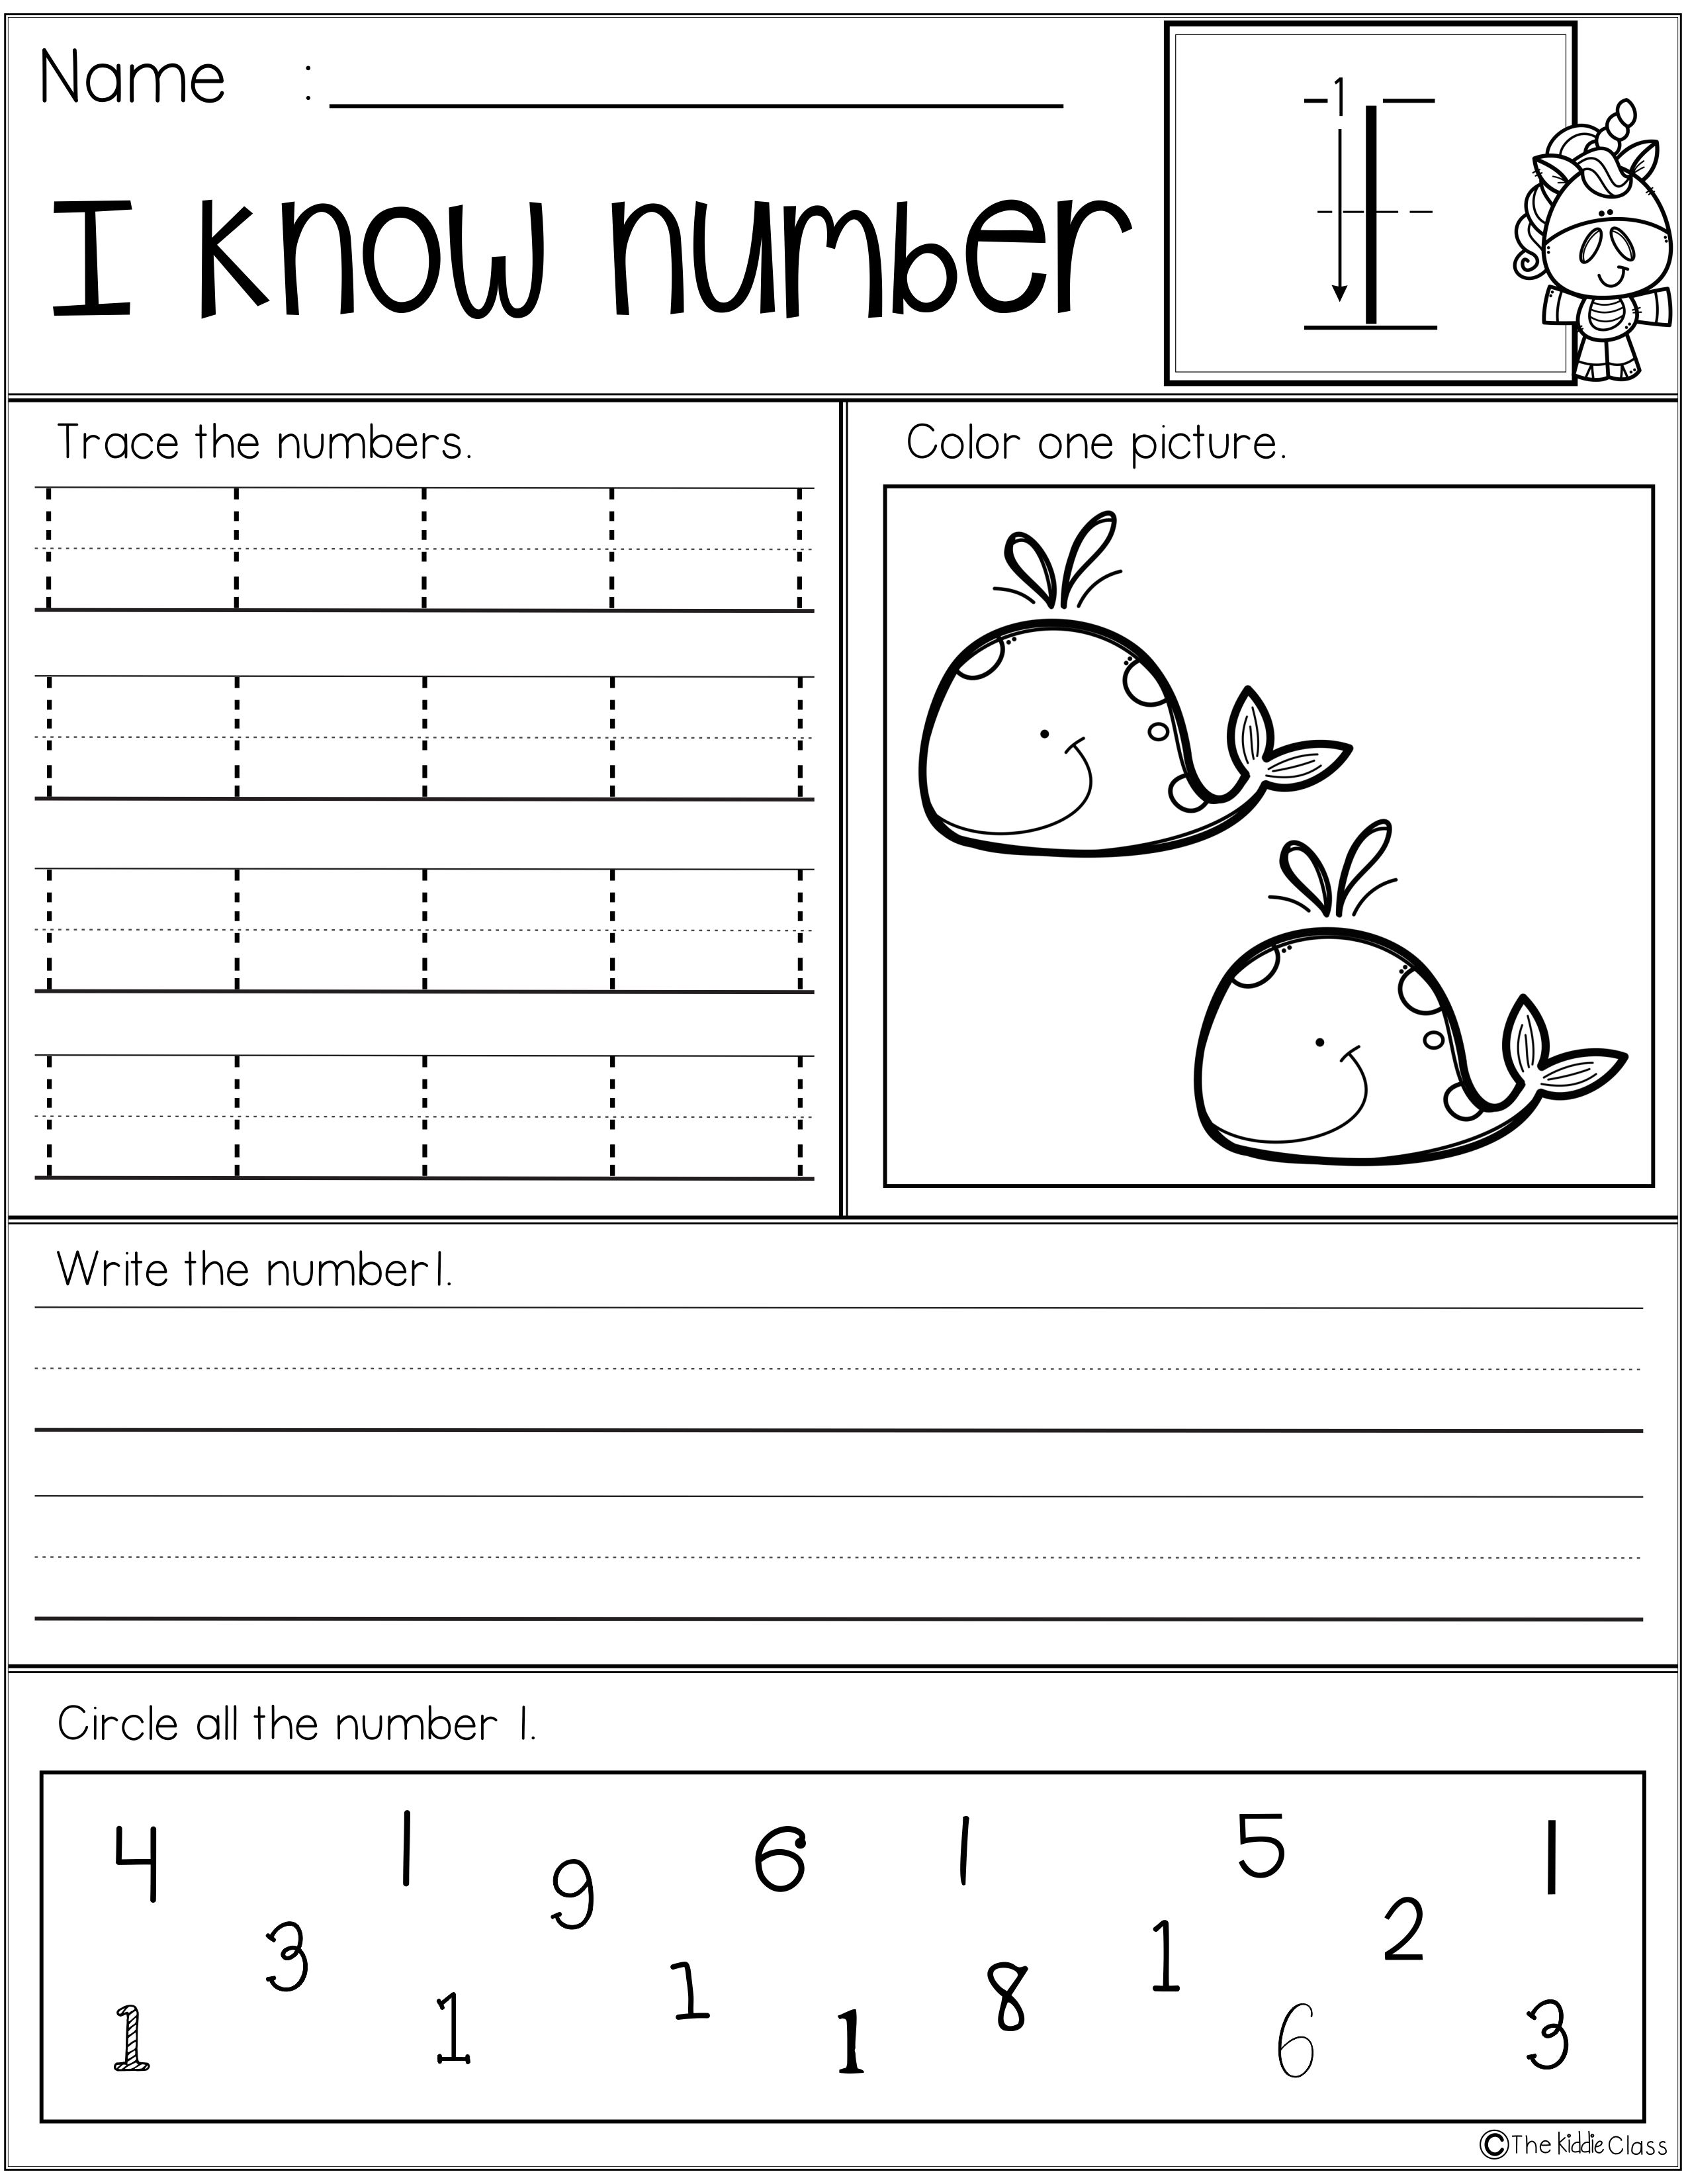 medium resolution of https://cute766.info/numbers-worksheets-learning-numbers-for-preschool-kindergarten-and-grade-1-k5-learning/